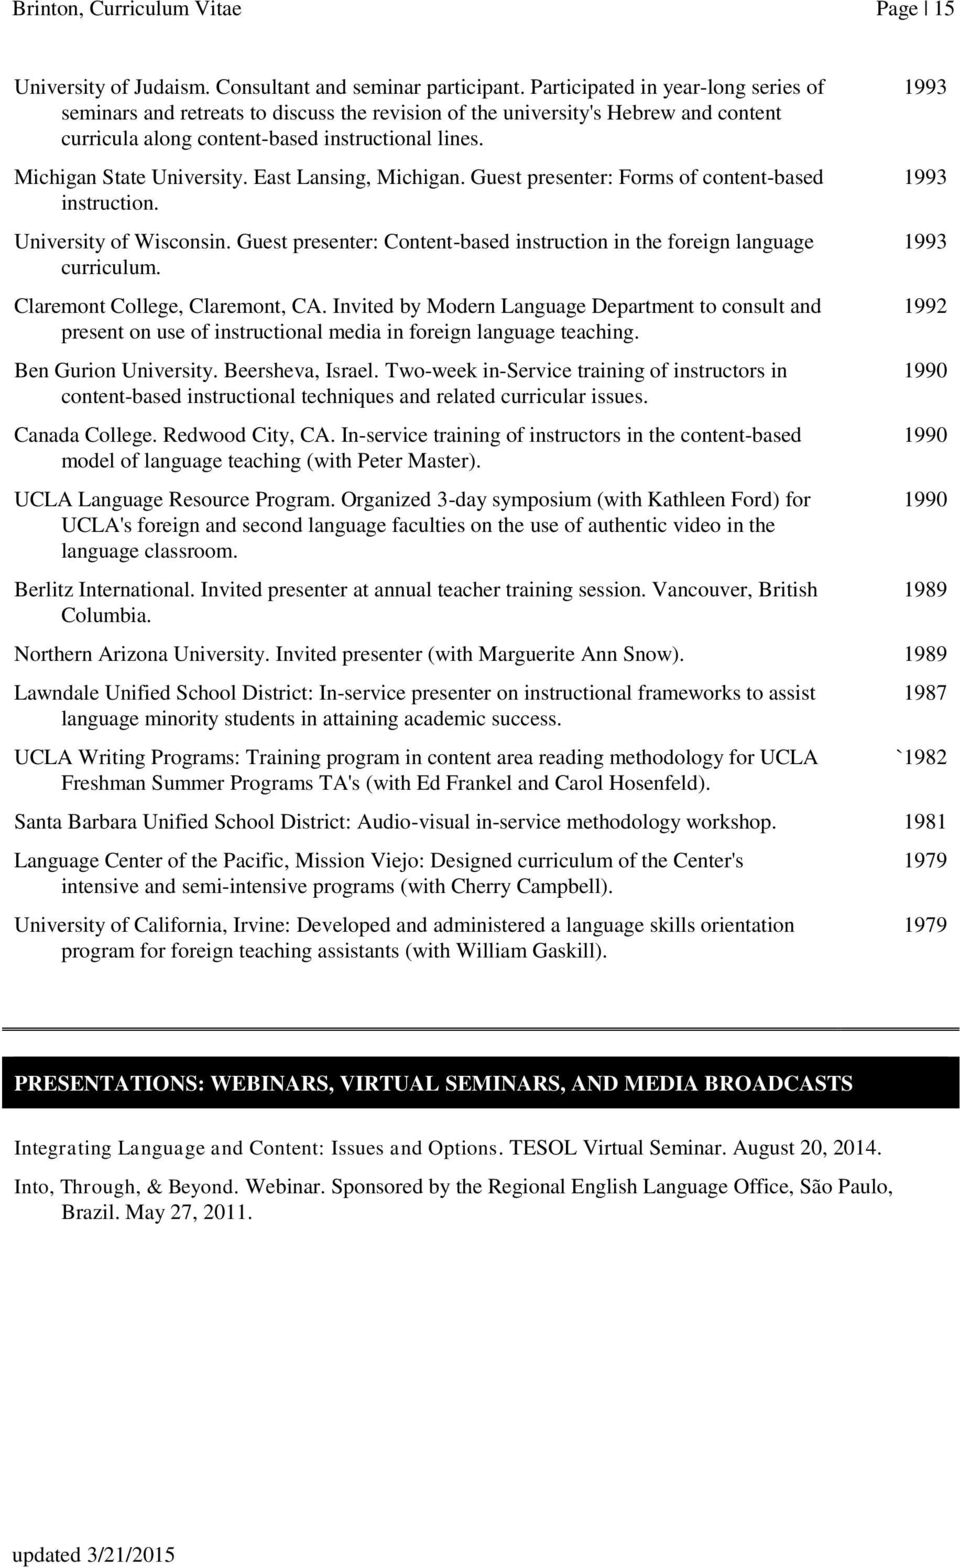 resume font size canada professional resume font size and